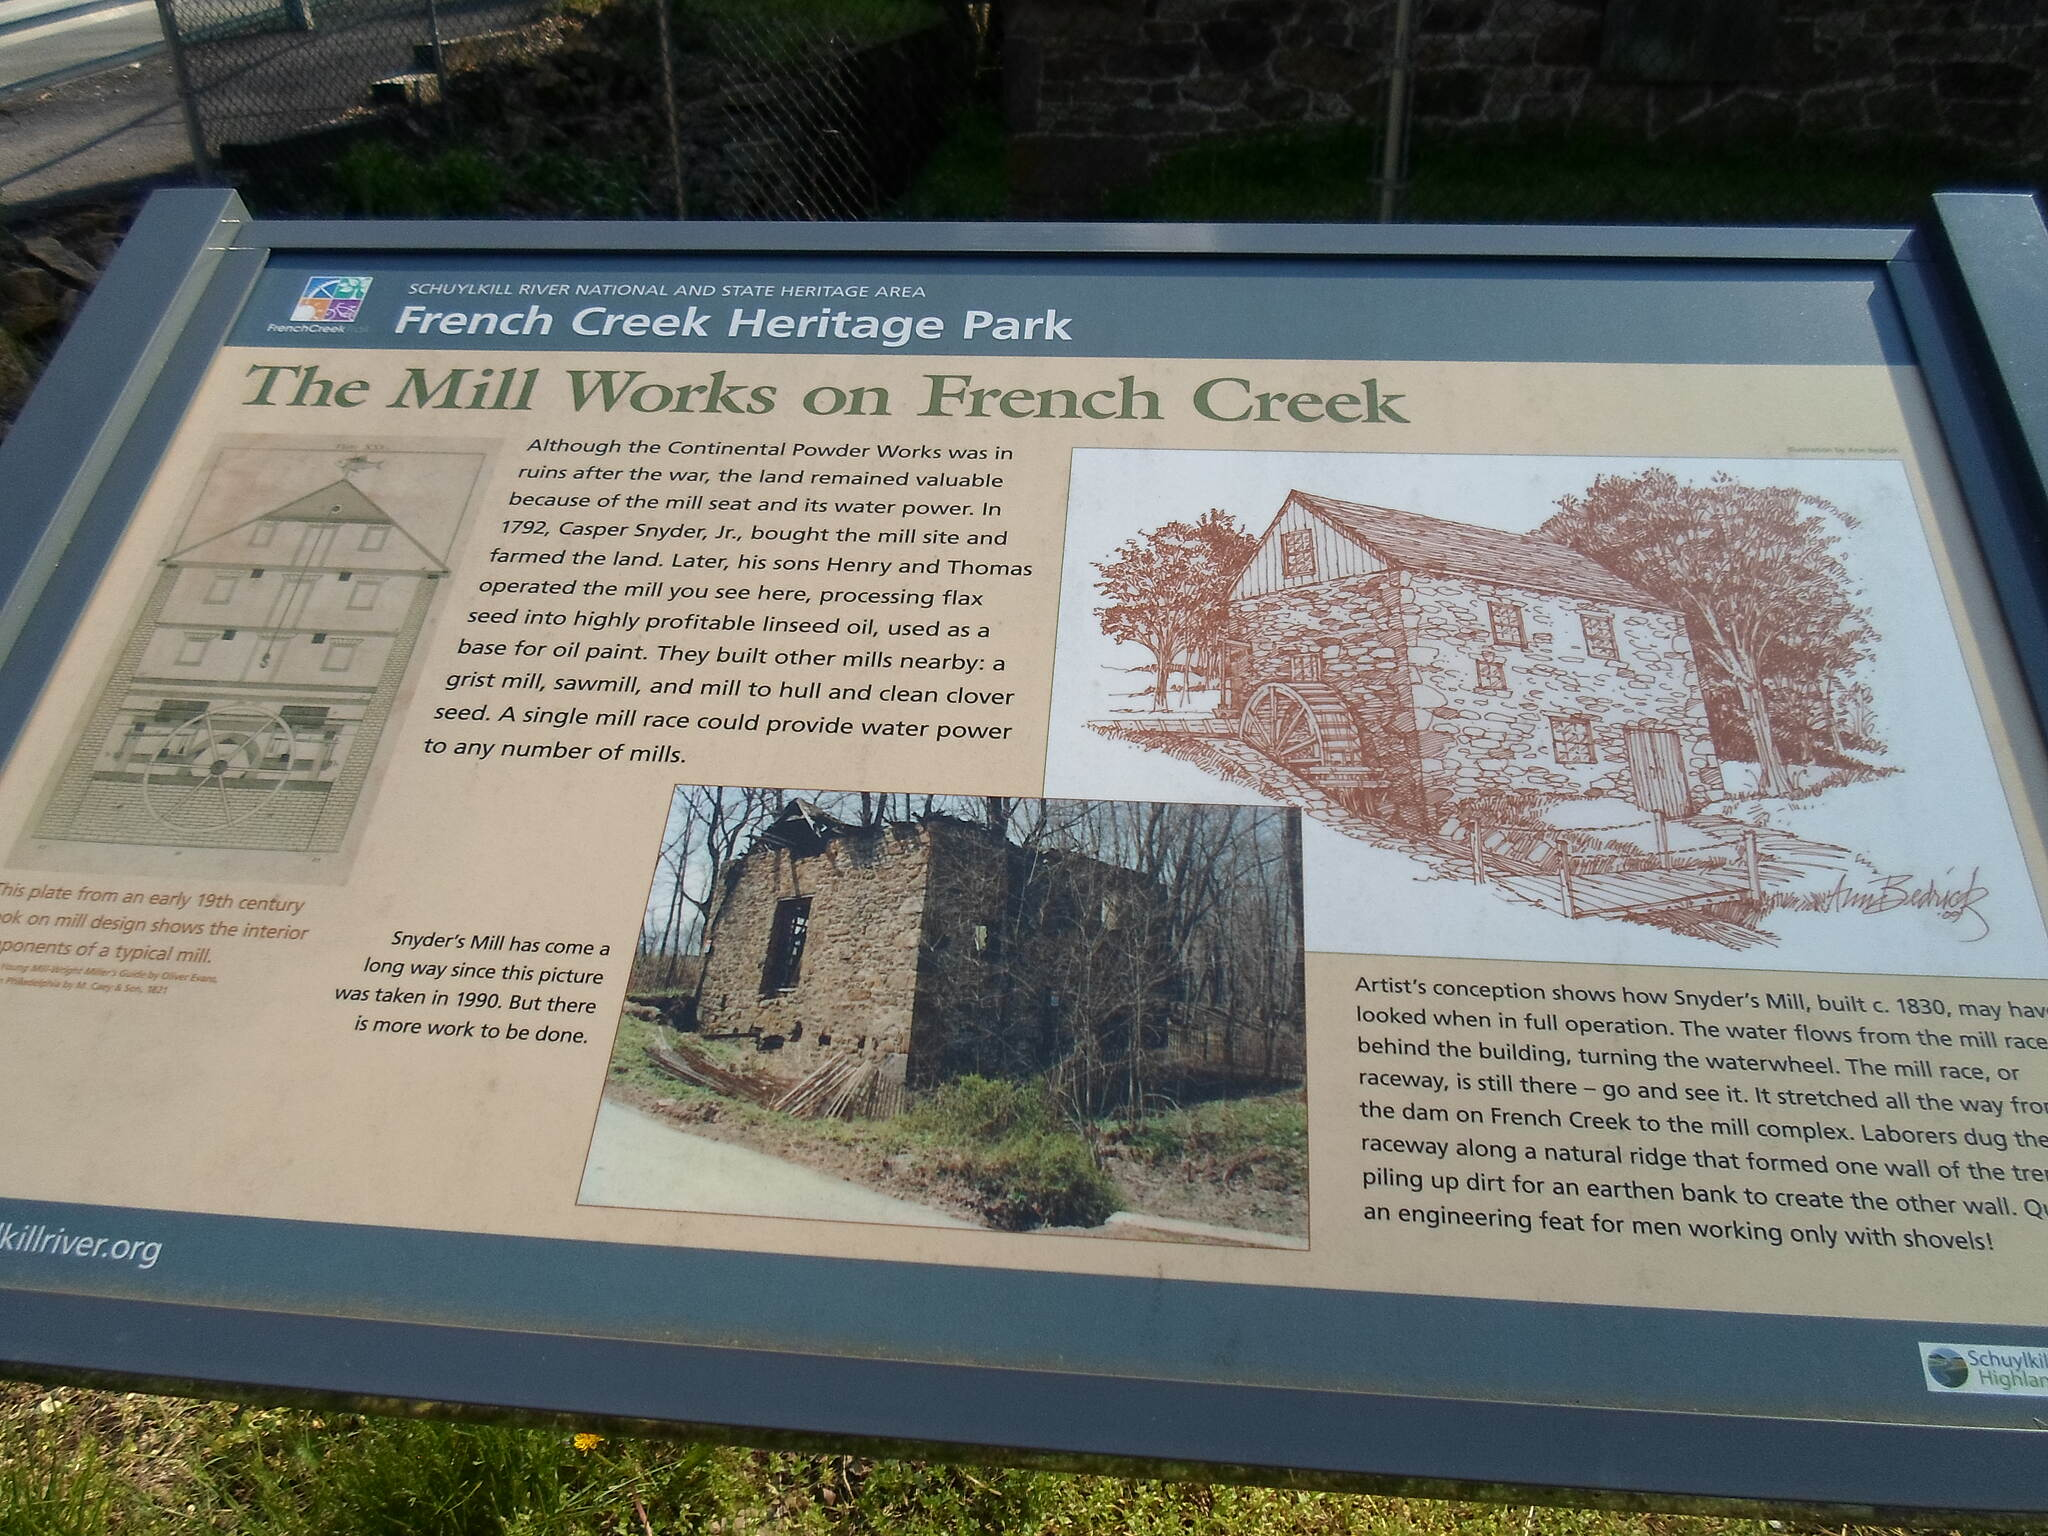 French Creek Trail French Creek Heritage Trail Interpretive sign describing the history of nearby Snyder's Mill.